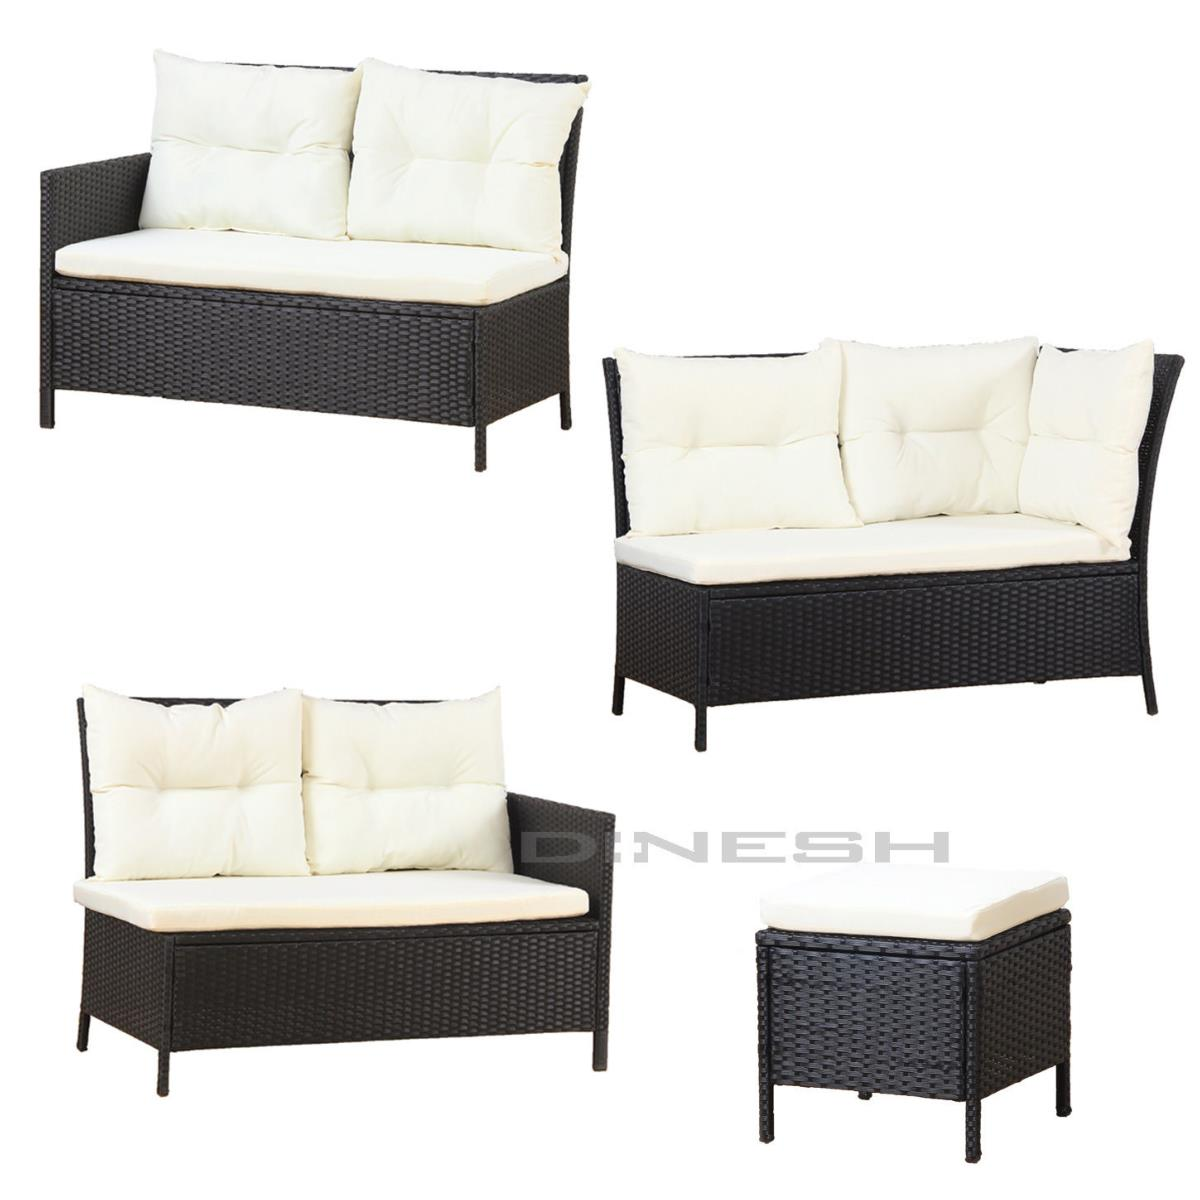 salon de jardin canap r sine tress e table 10 personnes. Black Bedroom Furniture Sets. Home Design Ideas